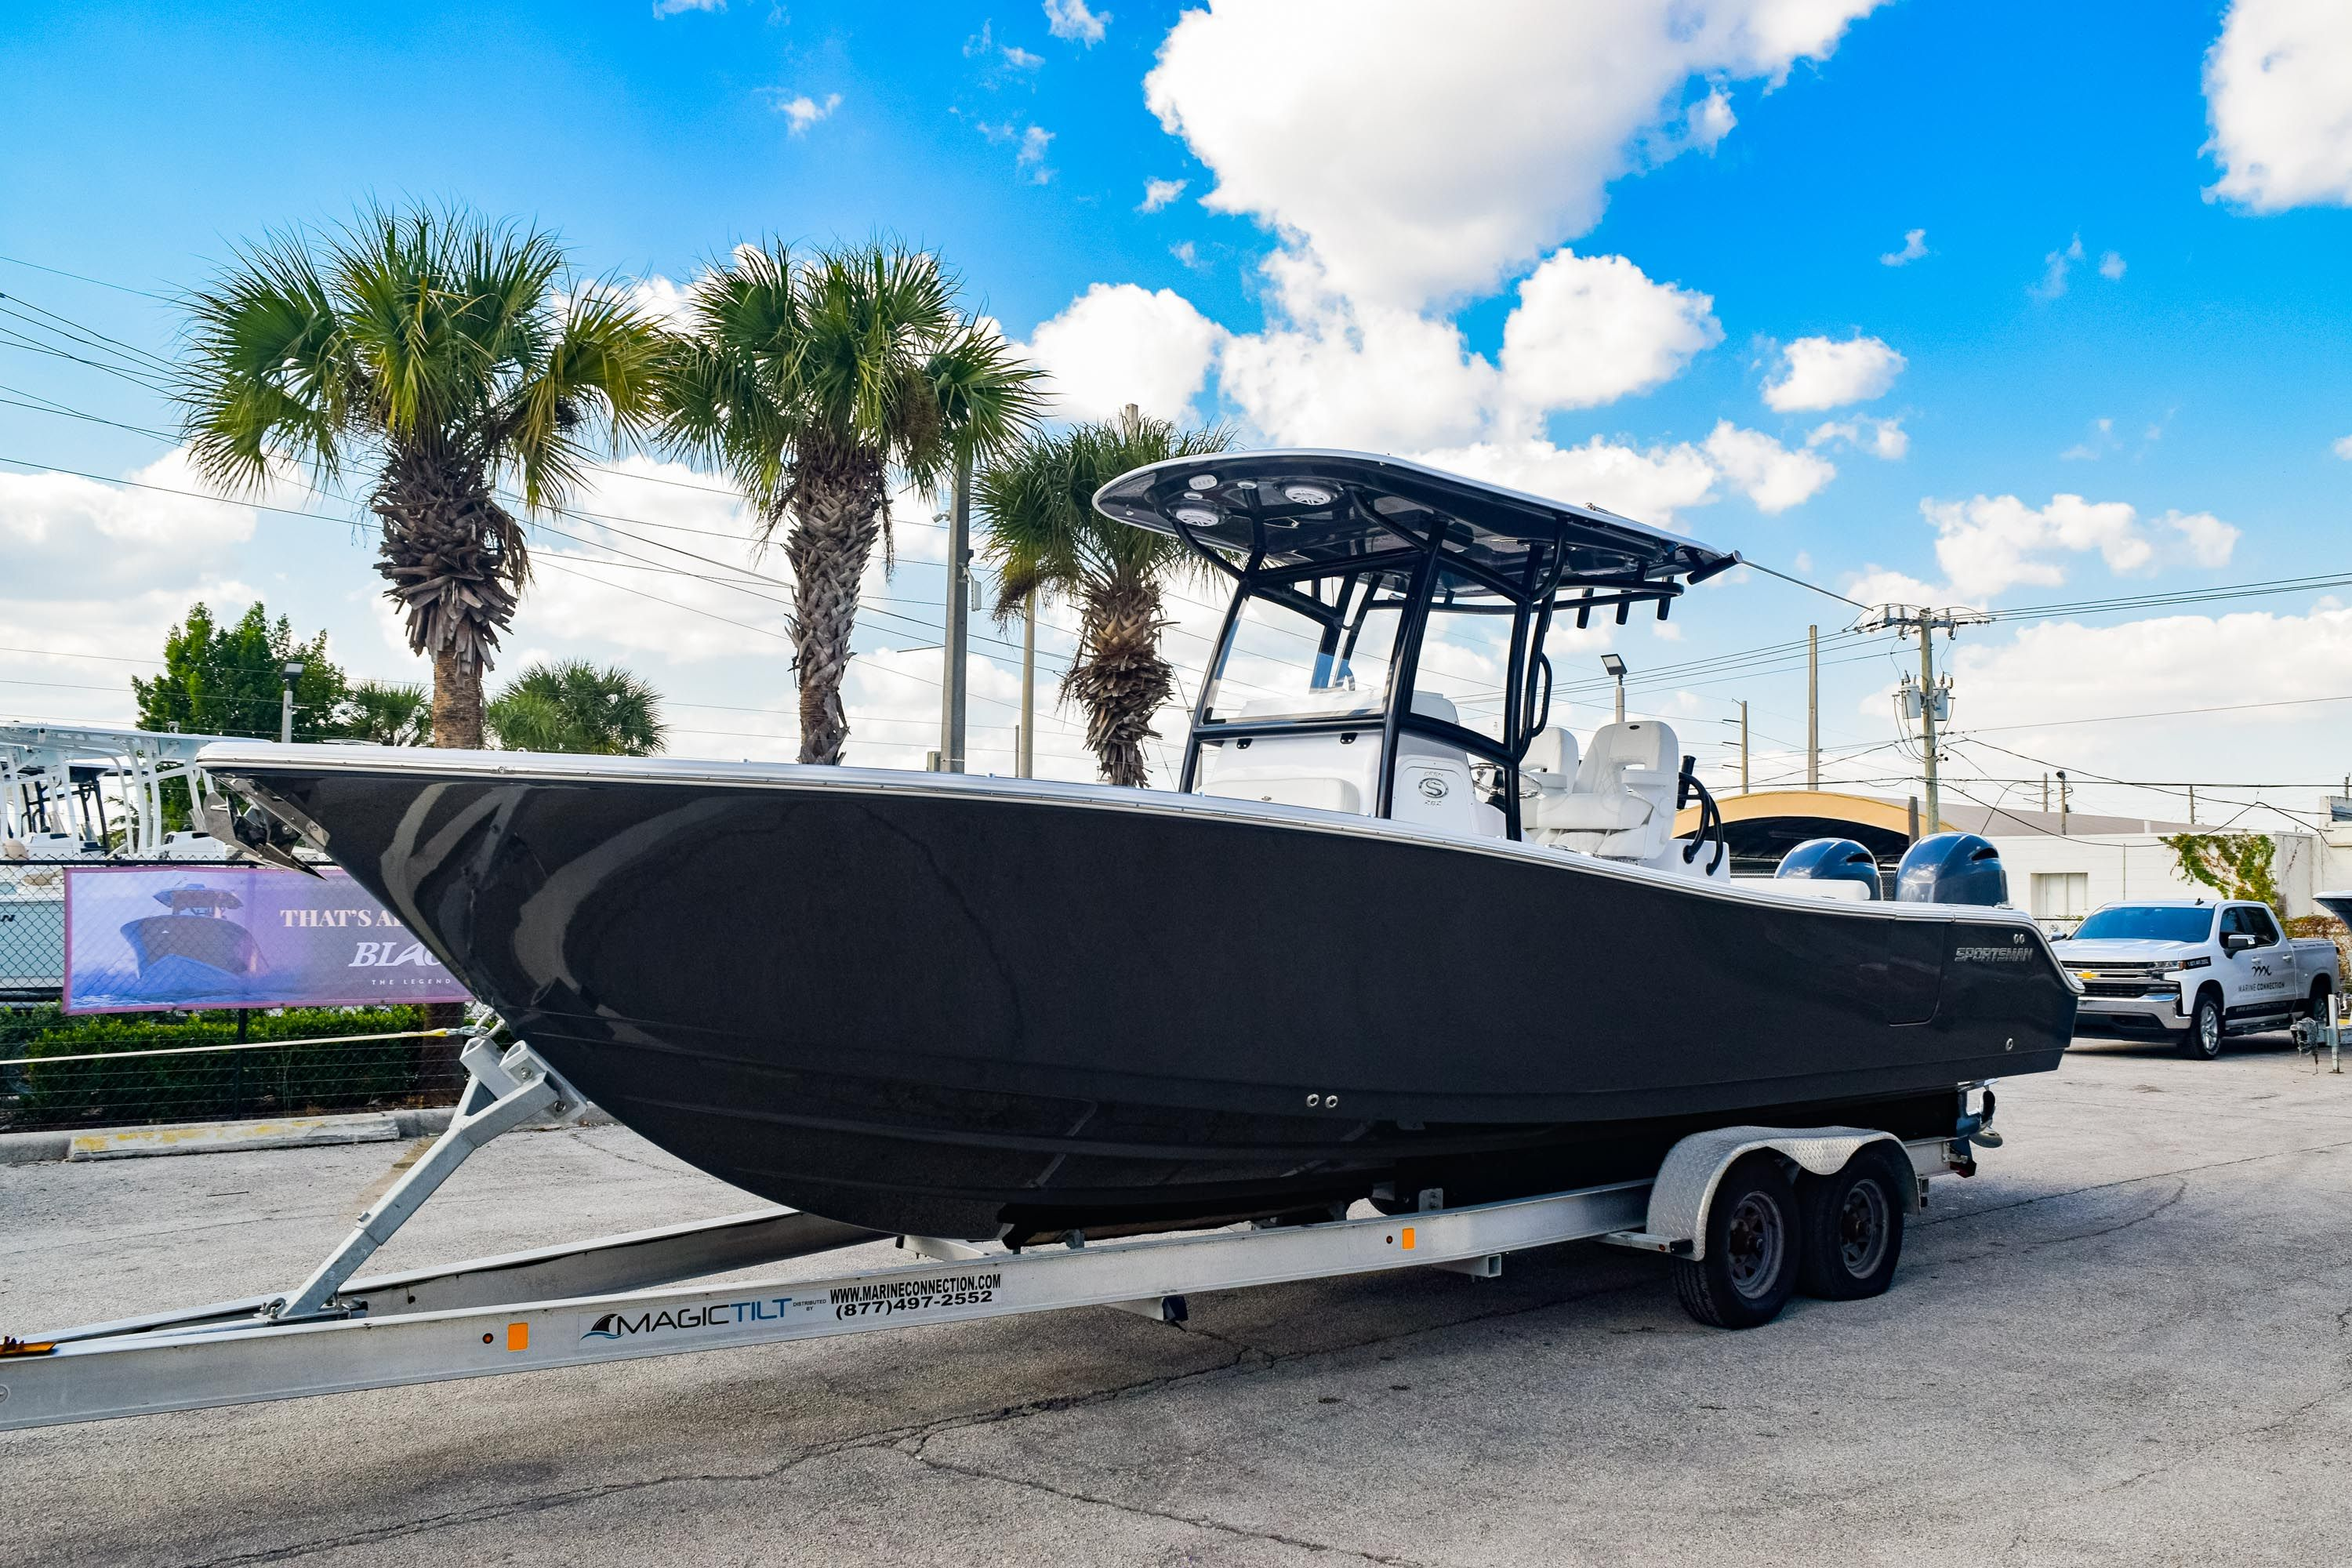 Thumbnail 3 for New 2020 Sportsman Open 282 Center Console boat for sale in Fort Lauderdale, FL